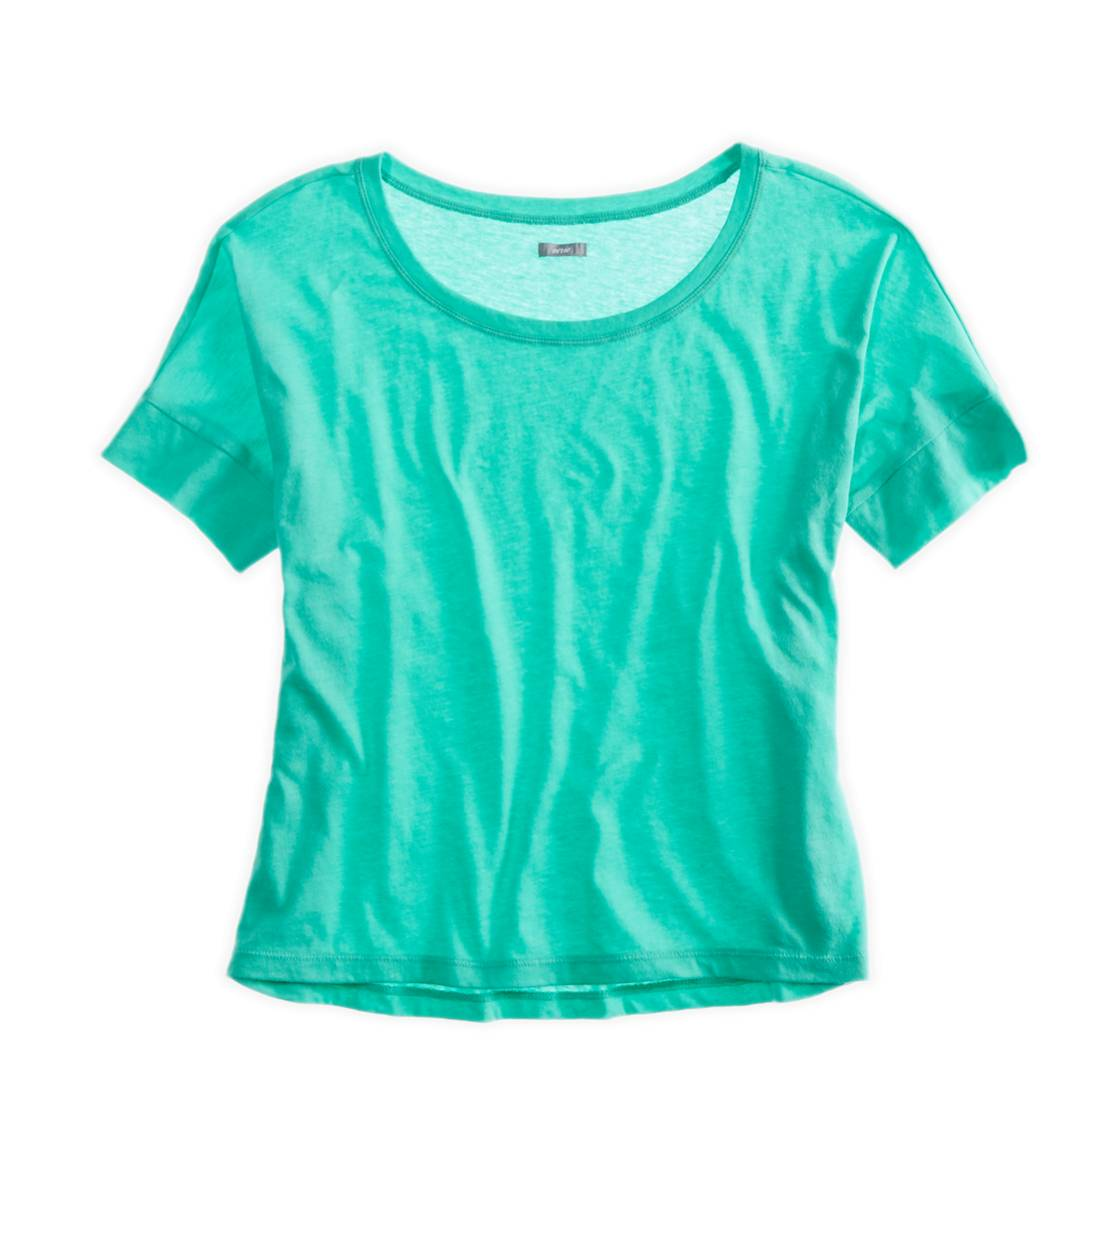 Mint Leaf Aerie Crop T-Shirt